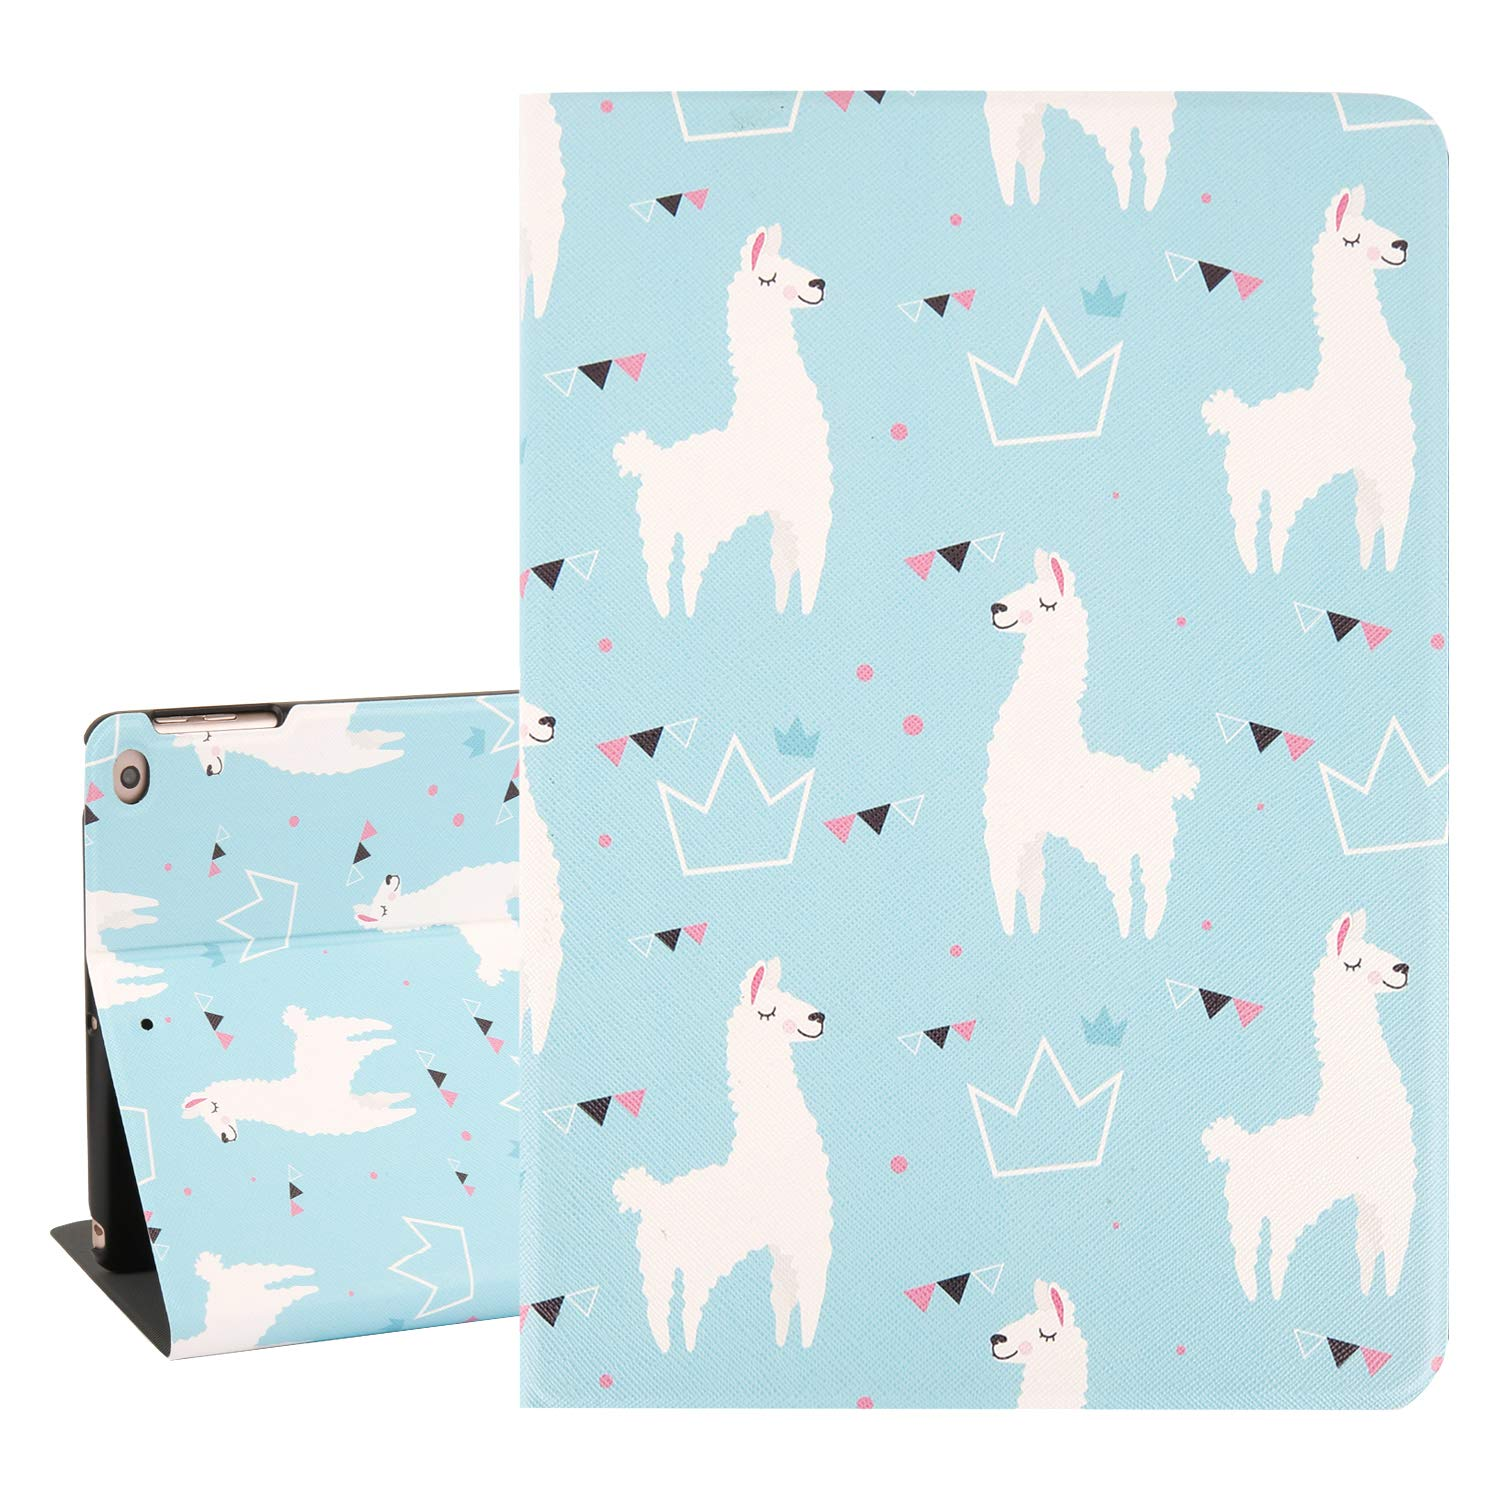 Hepix Cute iPad 9.7 Case for Kids Alpaca iPad Air 2 Cases, Slim Lightweight Protective 5th Generation iPad Case PU Leather Multi Angles Stand